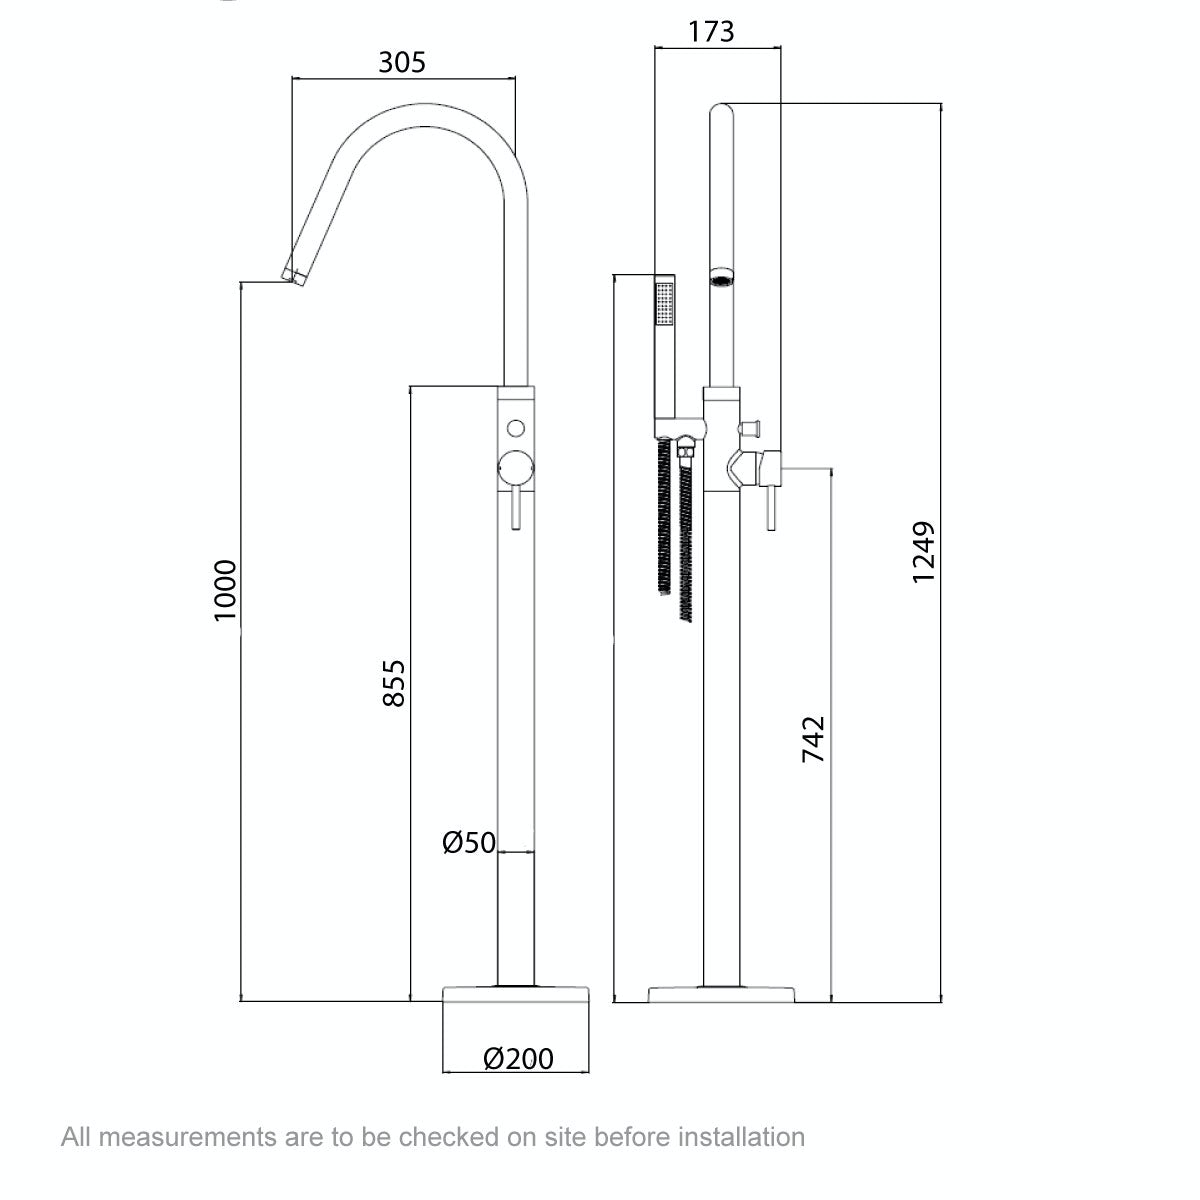 Dimensions for Mode Heath freestanding bath filler tap